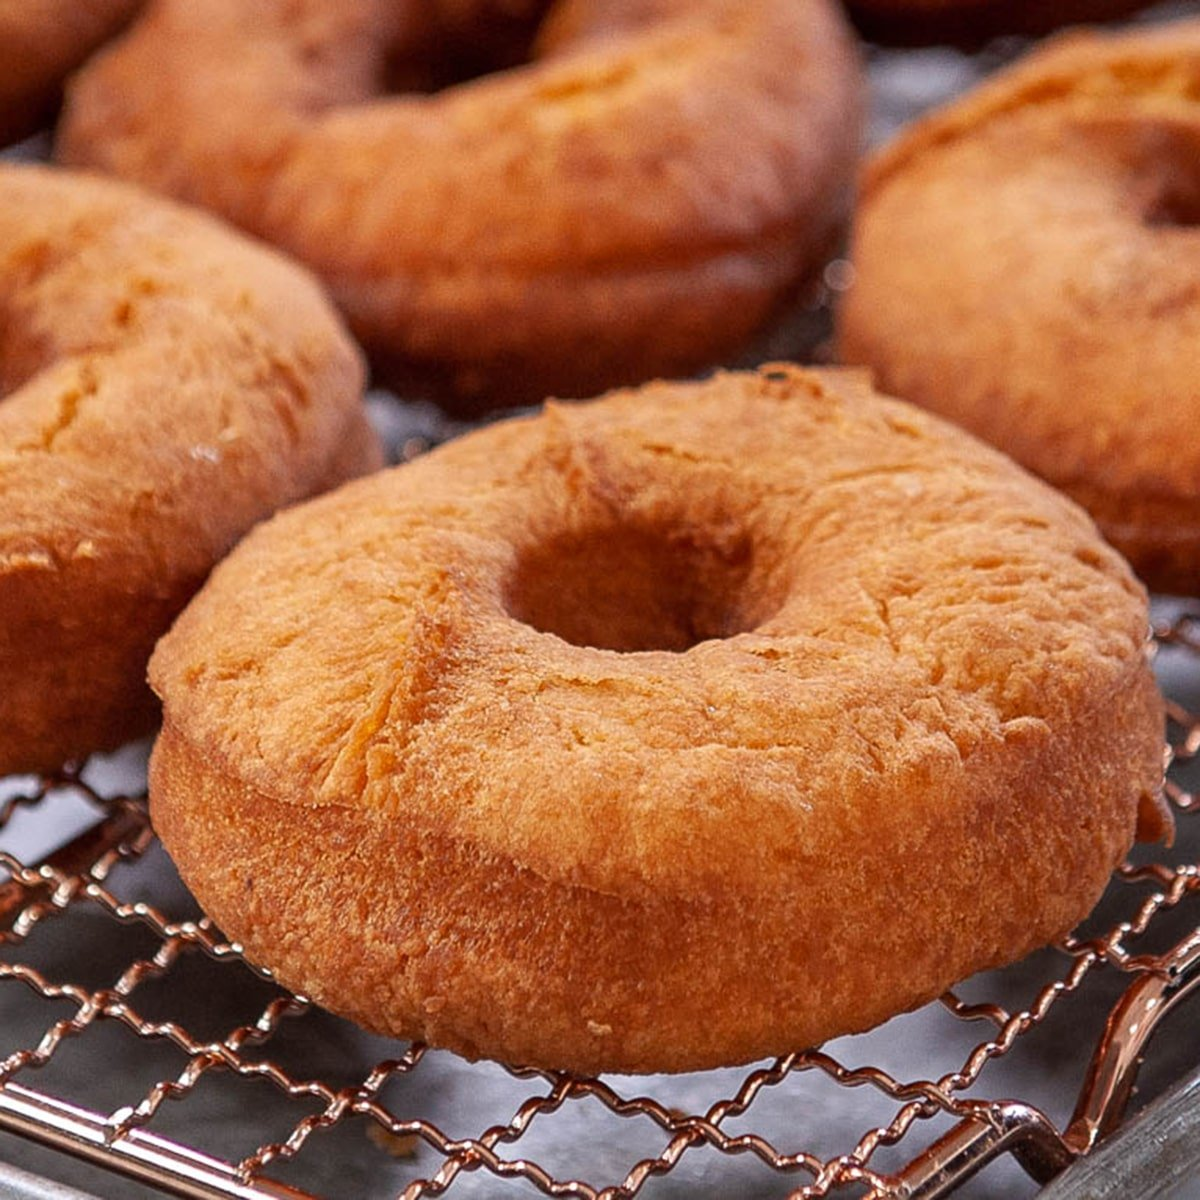 Classic Fried Cake Donut Recipe Glaze Options Sugar Geek Show